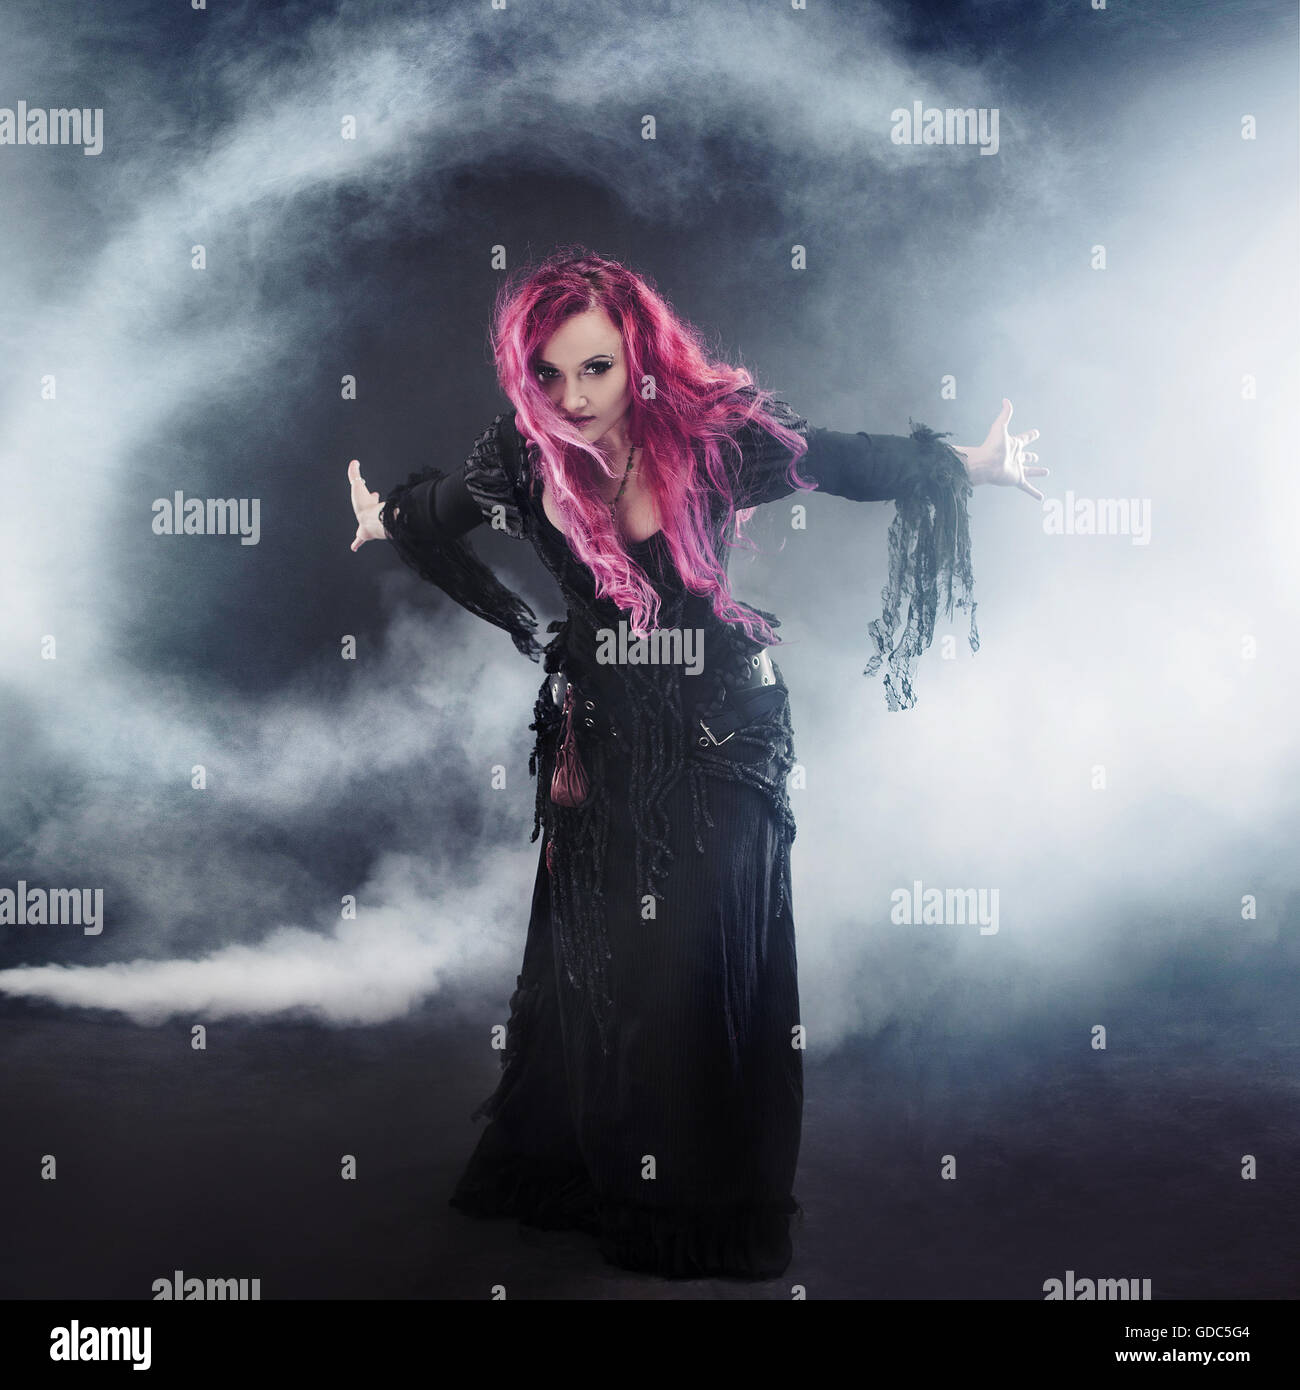 Halloween Witch creates tornado. Attractive woman with red hair in witches costume standing outstretched arms, strong - Stock Image